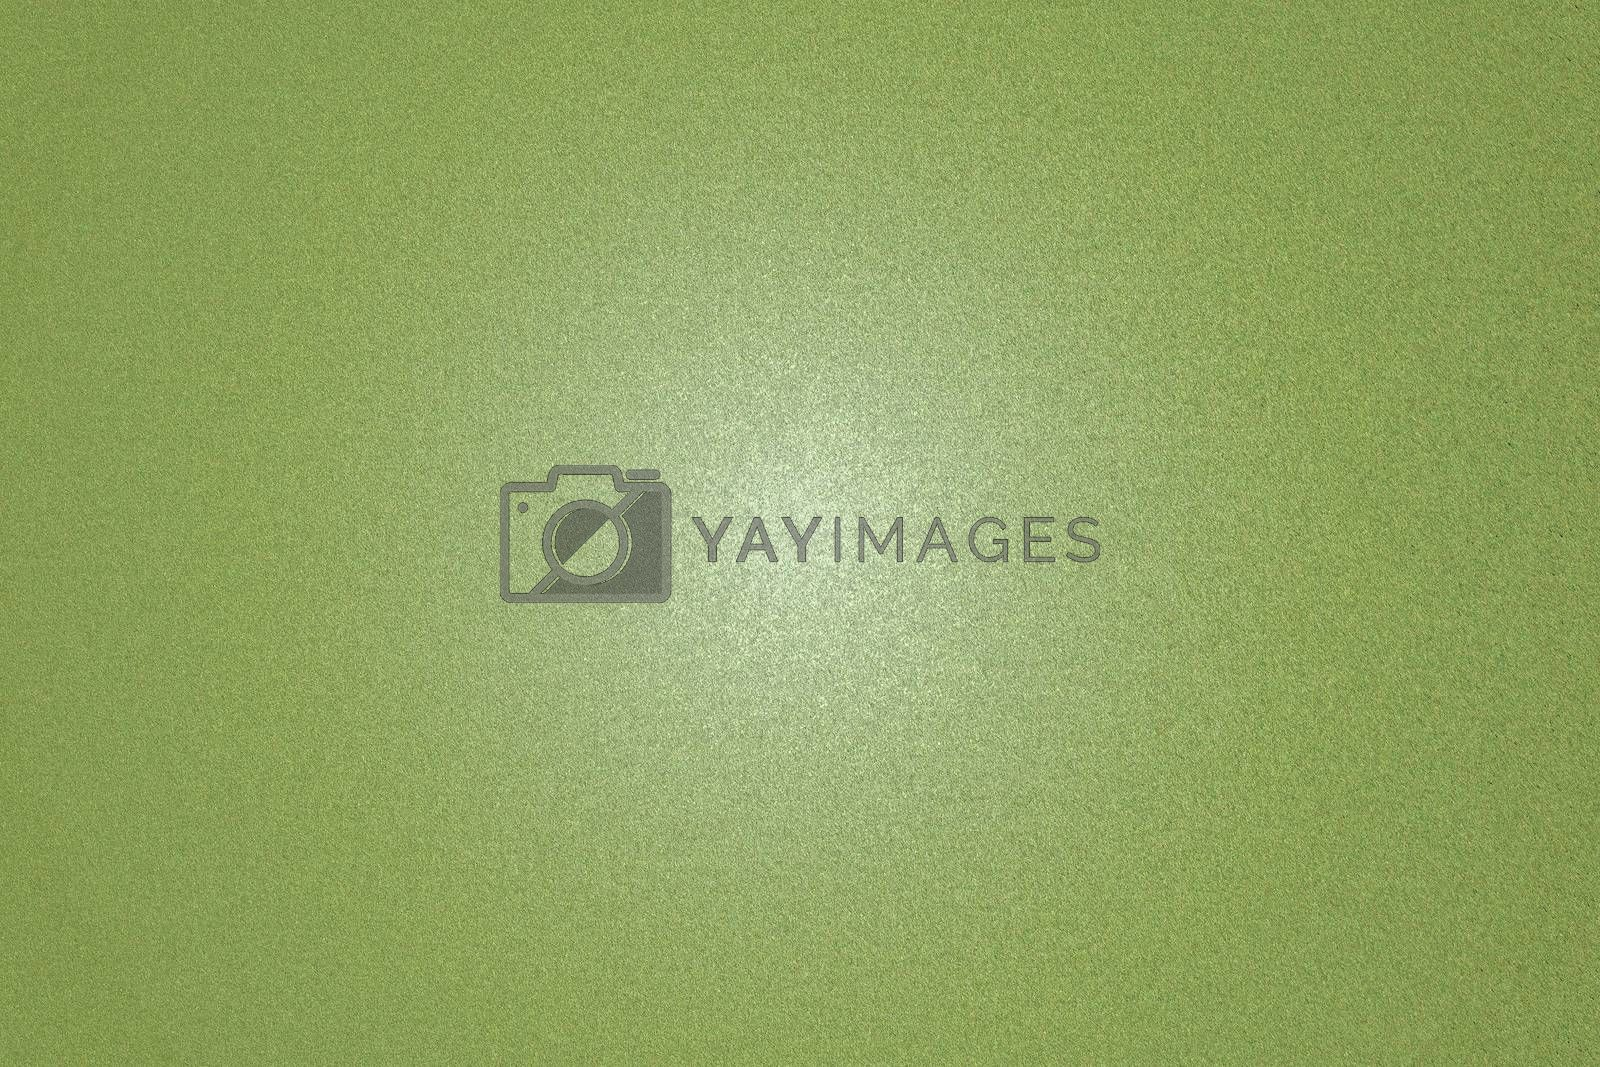 Royalty free image of Brushed light green metallic sheet, abstract texture background by mouu007